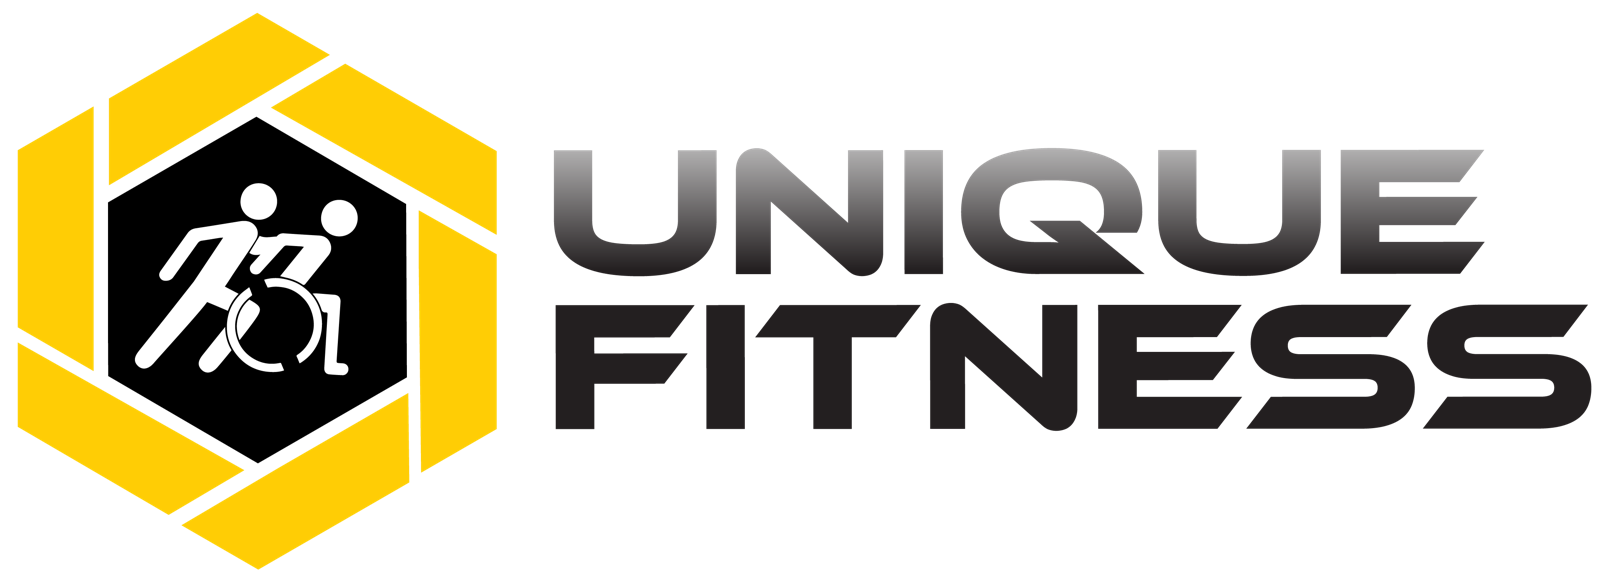 UNIQUE FITNESS - D.R.E.A.M.S. Foundation of Acadiana